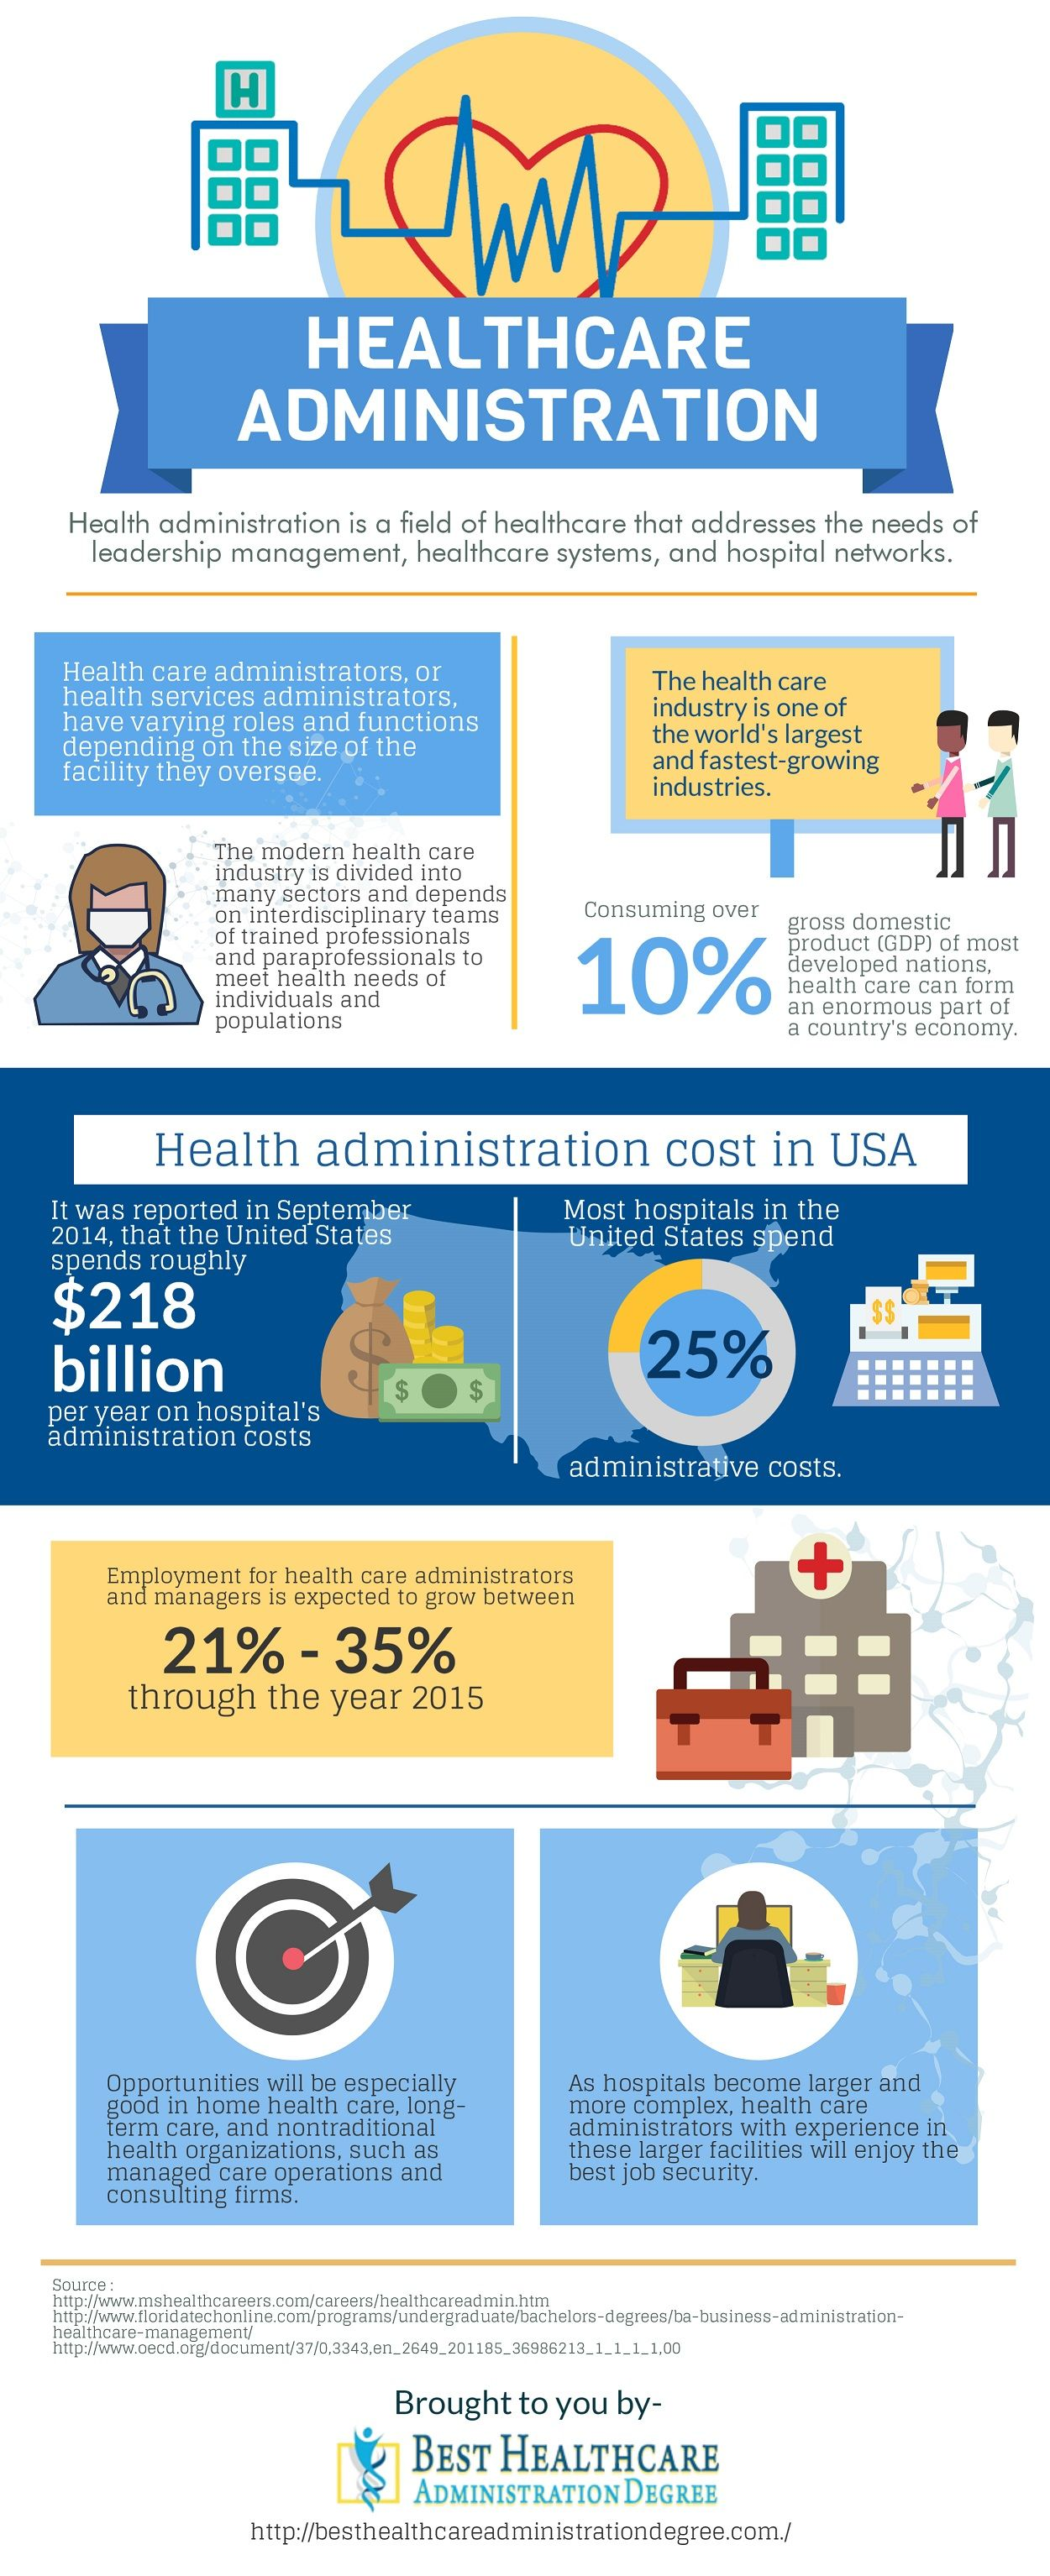 Health administration is a field of healthcare that